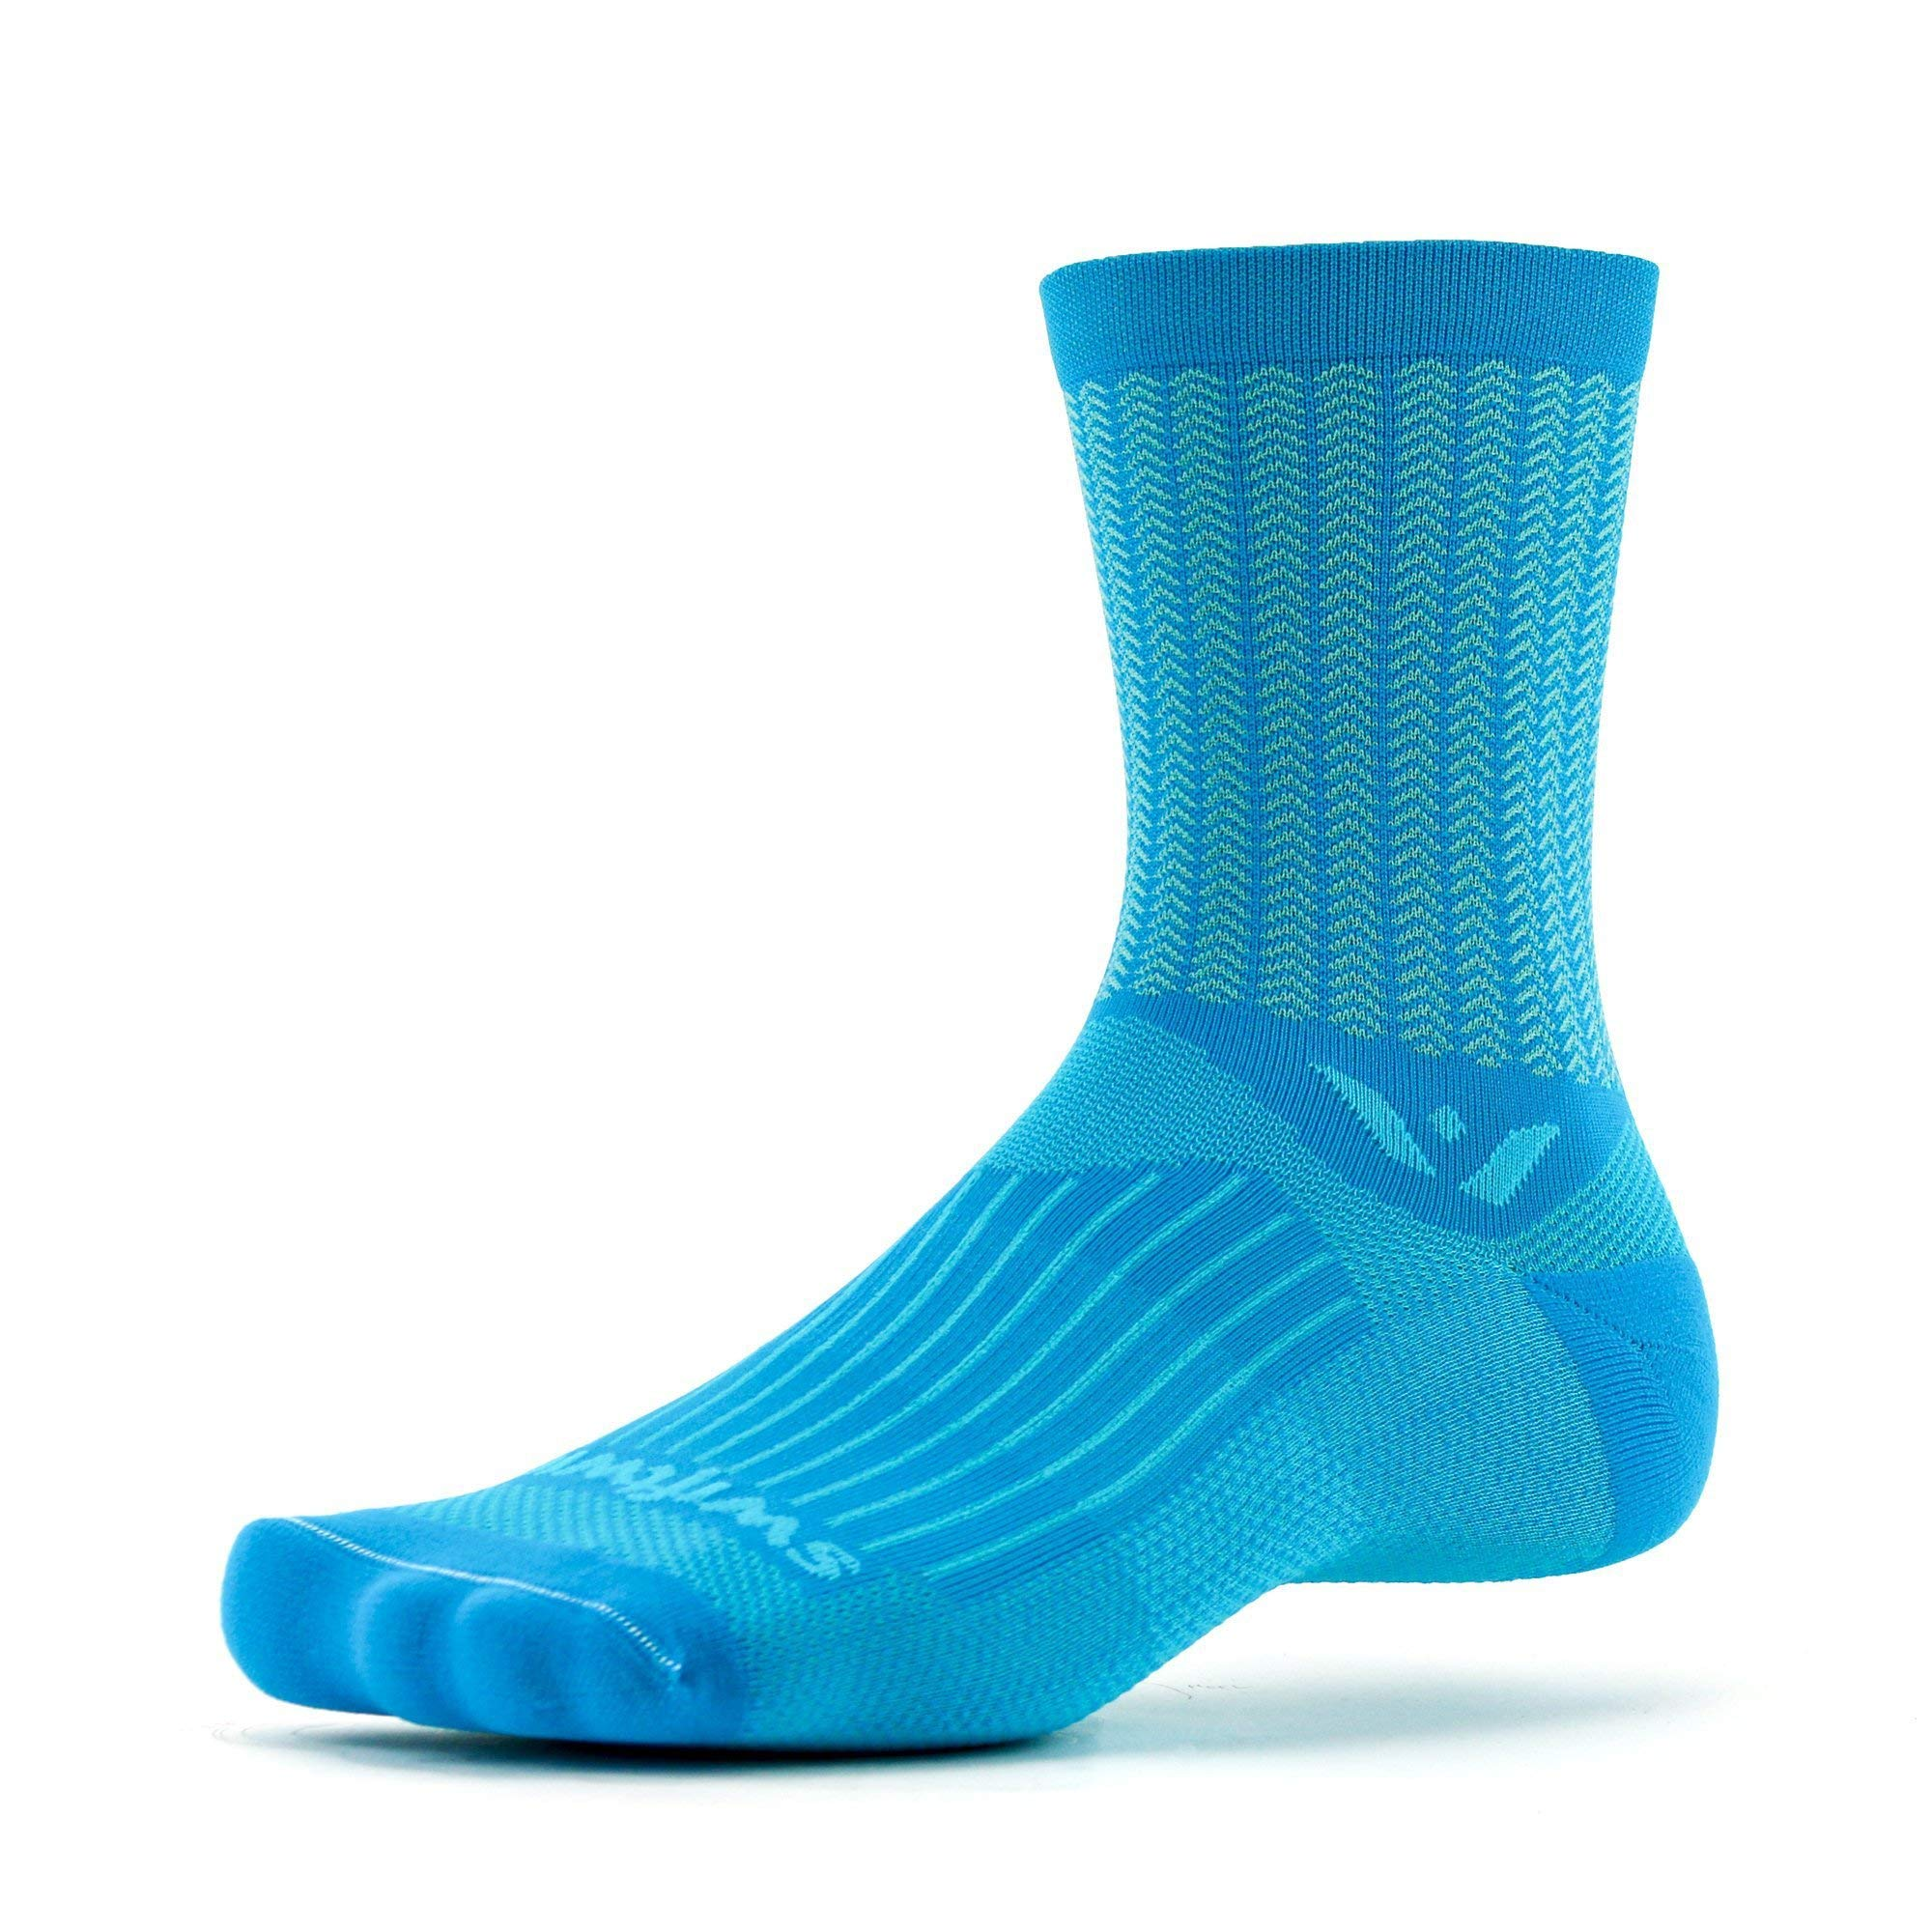 Swiftwick- VISION FIVE AERO Running & Cycling Socks, Performance Crew Socks